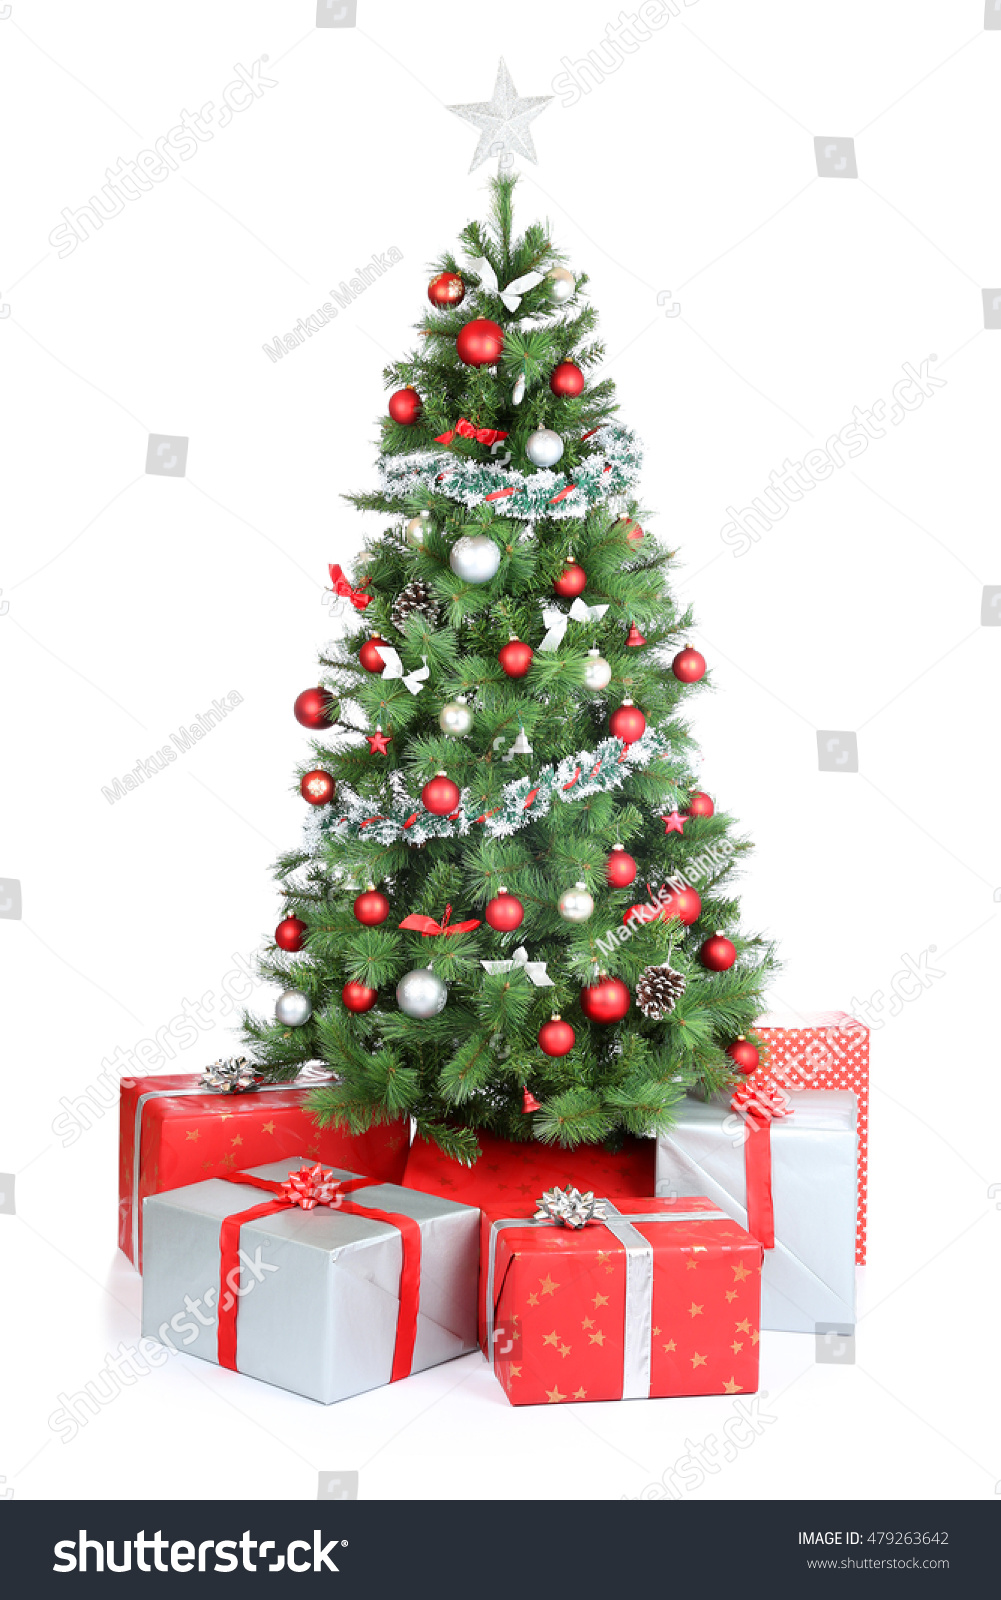 Christmas tree gifts present decoration isolated stock for Decoration on a present